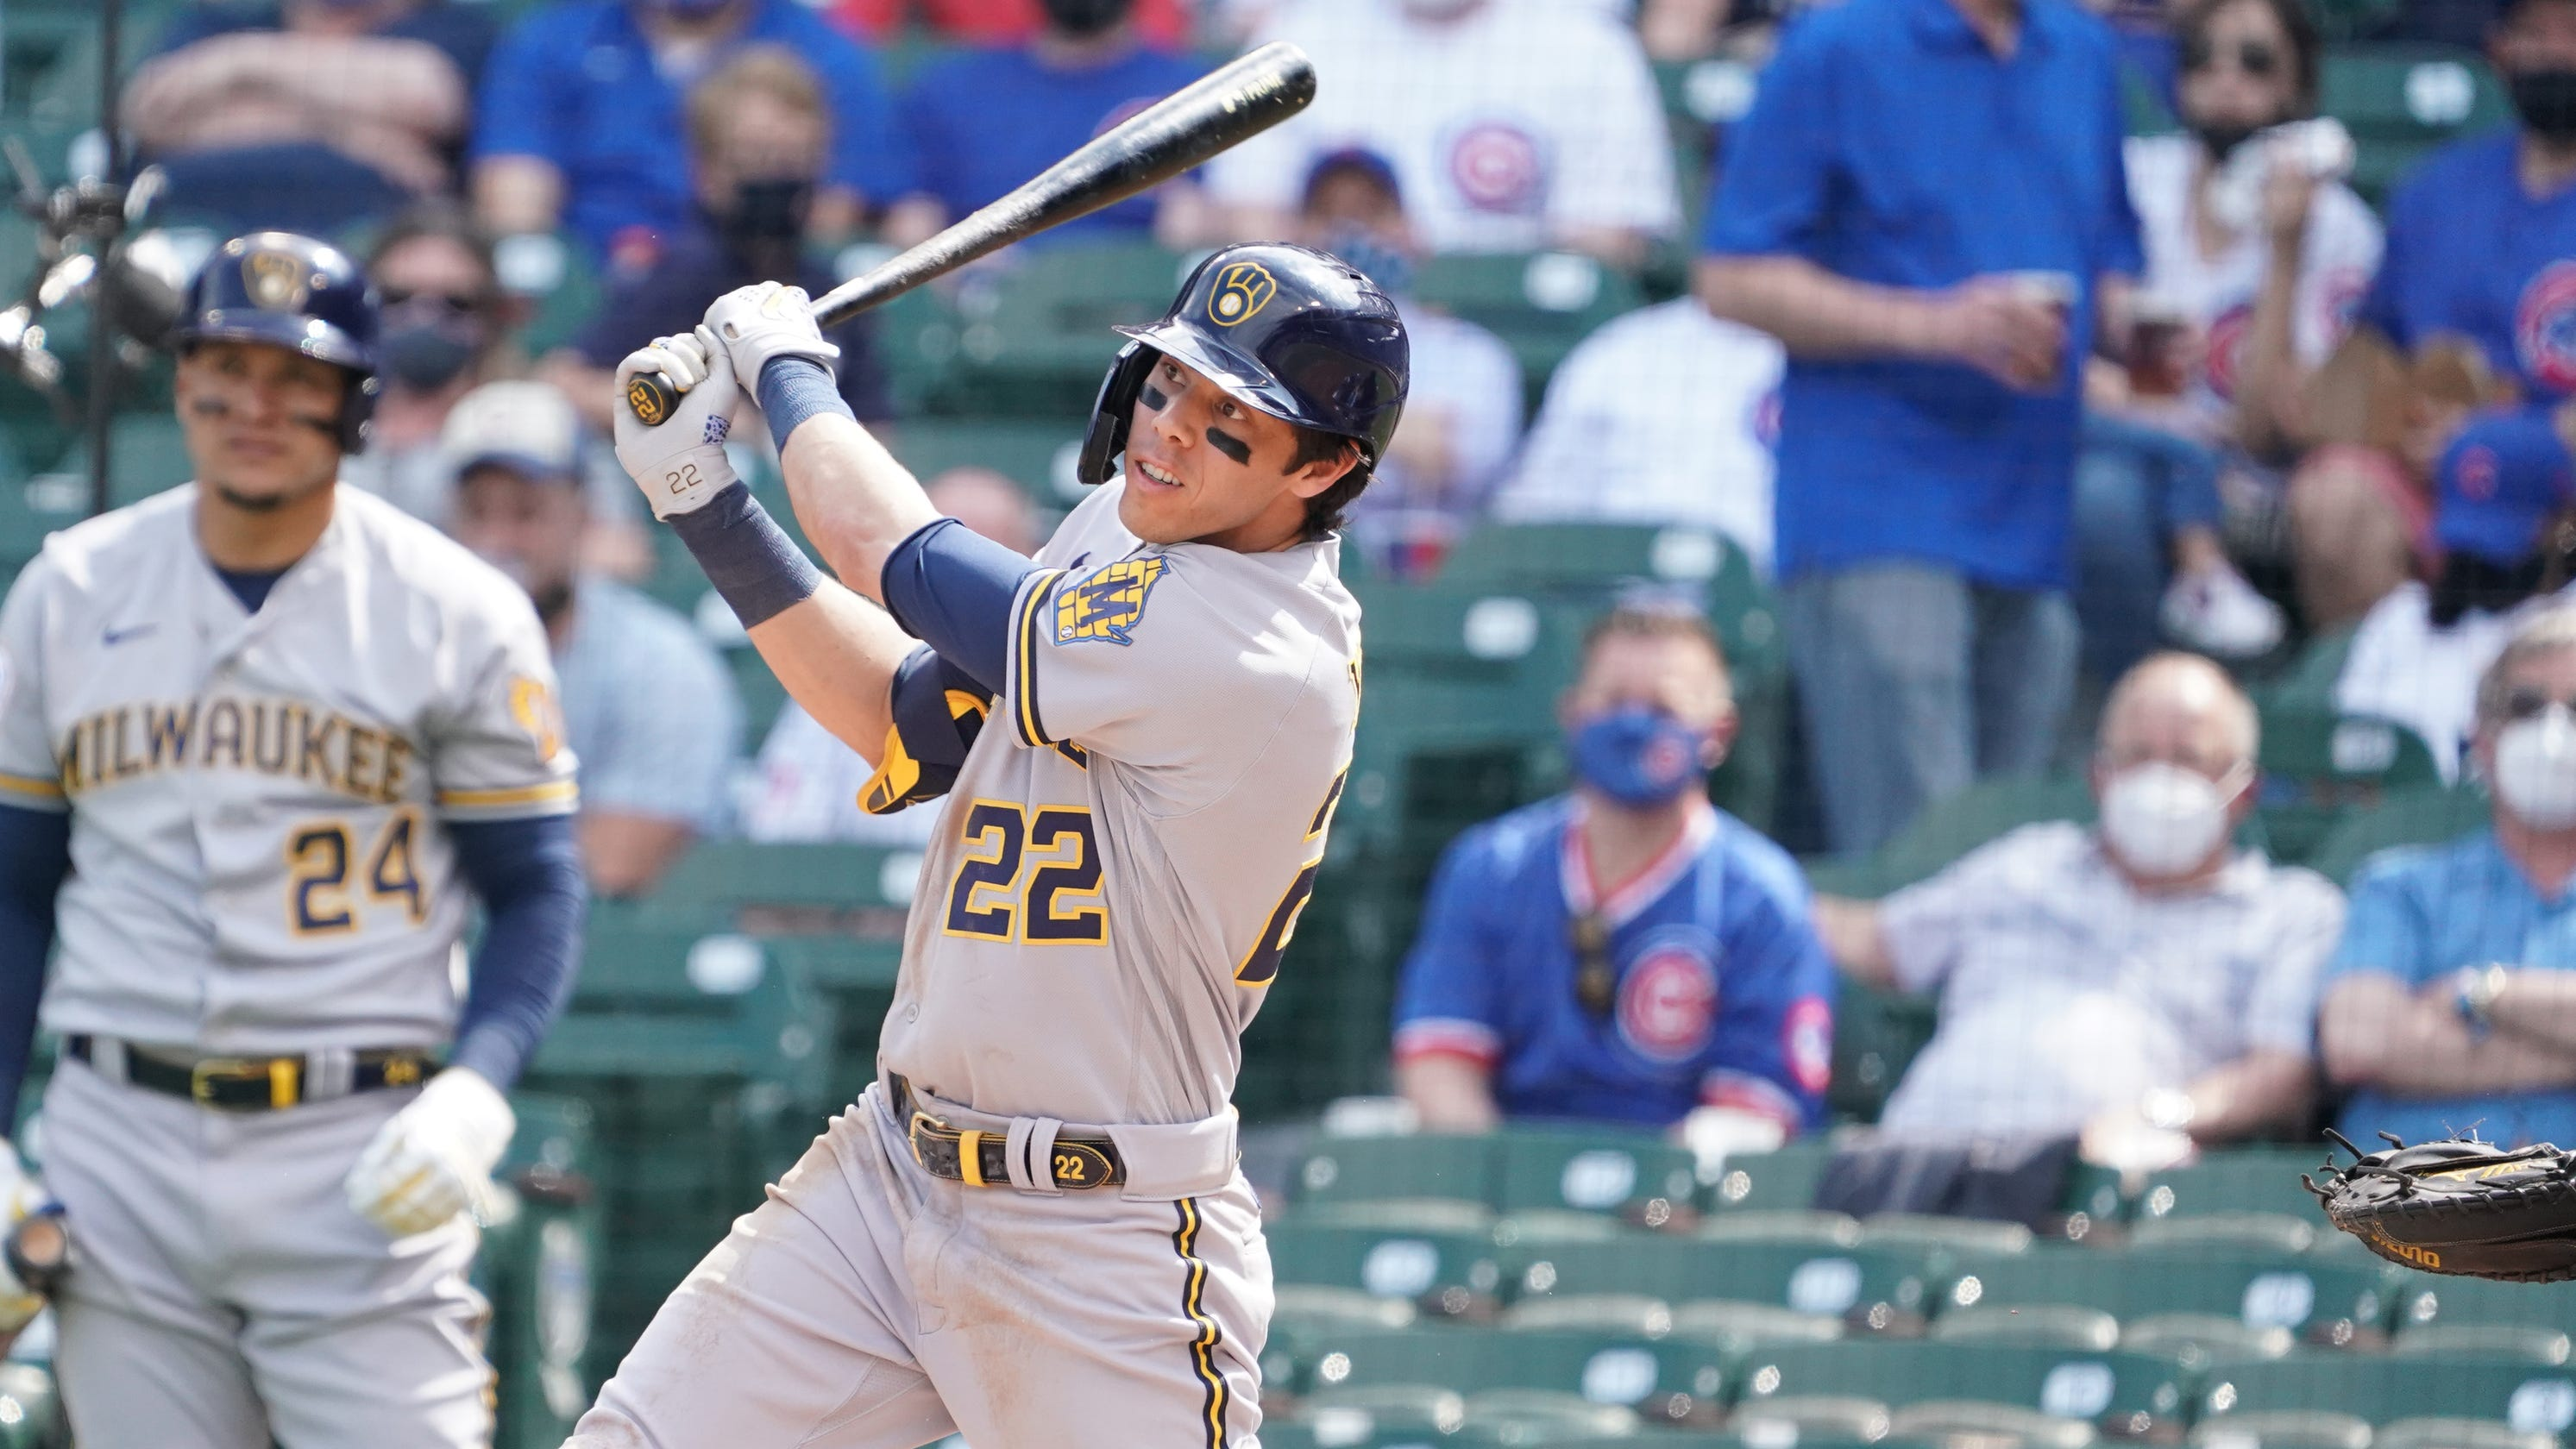 Hitting coach Andy Haines knows better than anyone how frustrating it was to Christian Yelich to go on IL